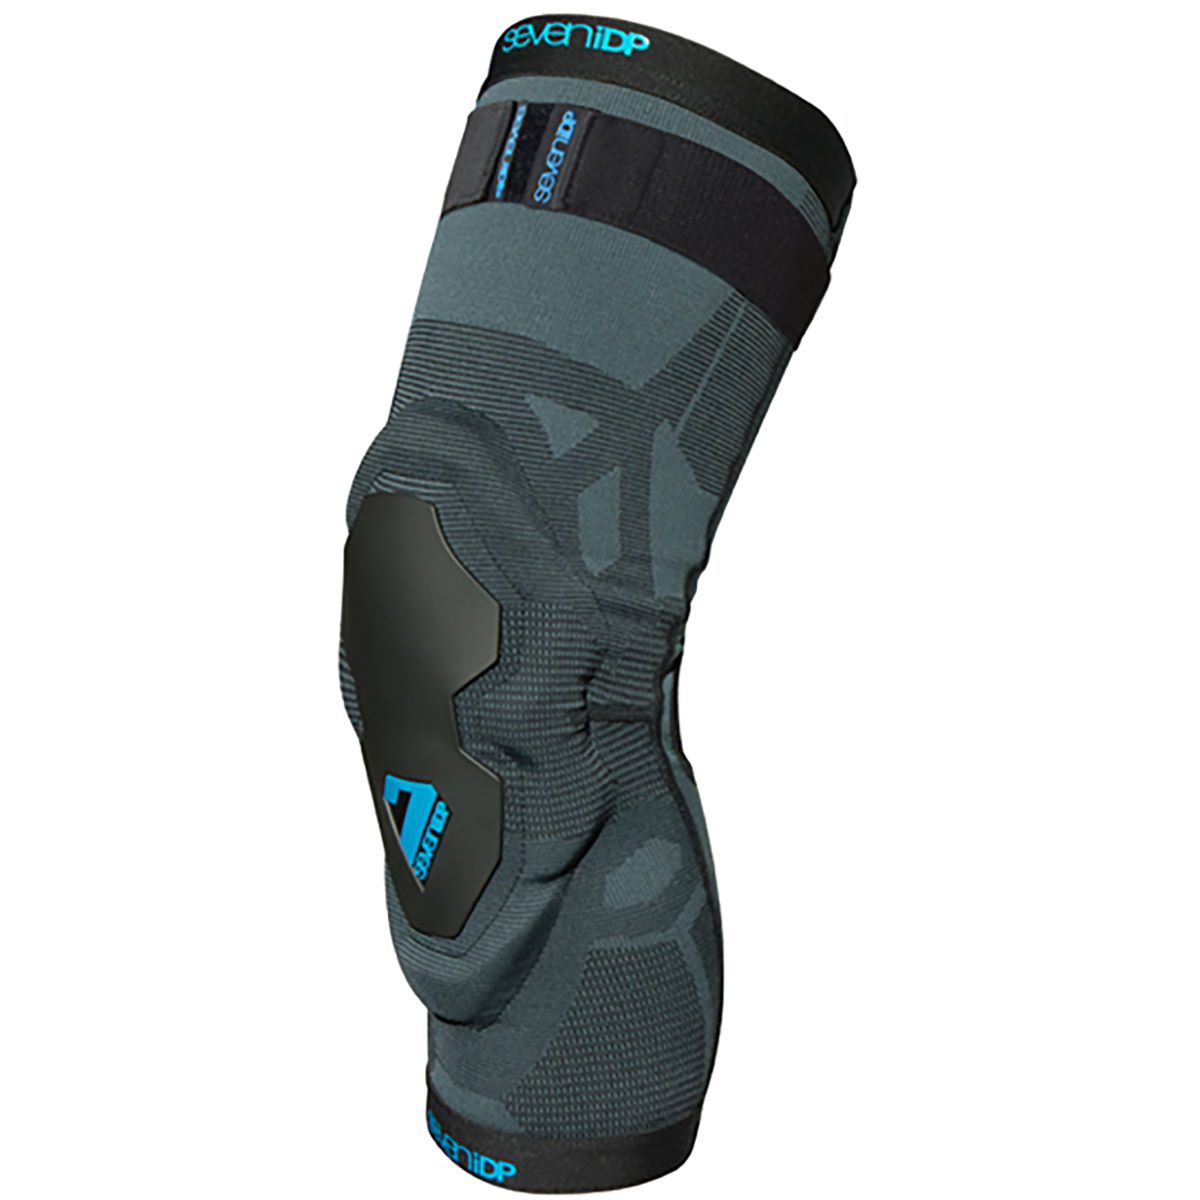 7 iDP Project Knee Pad - Rodilleras